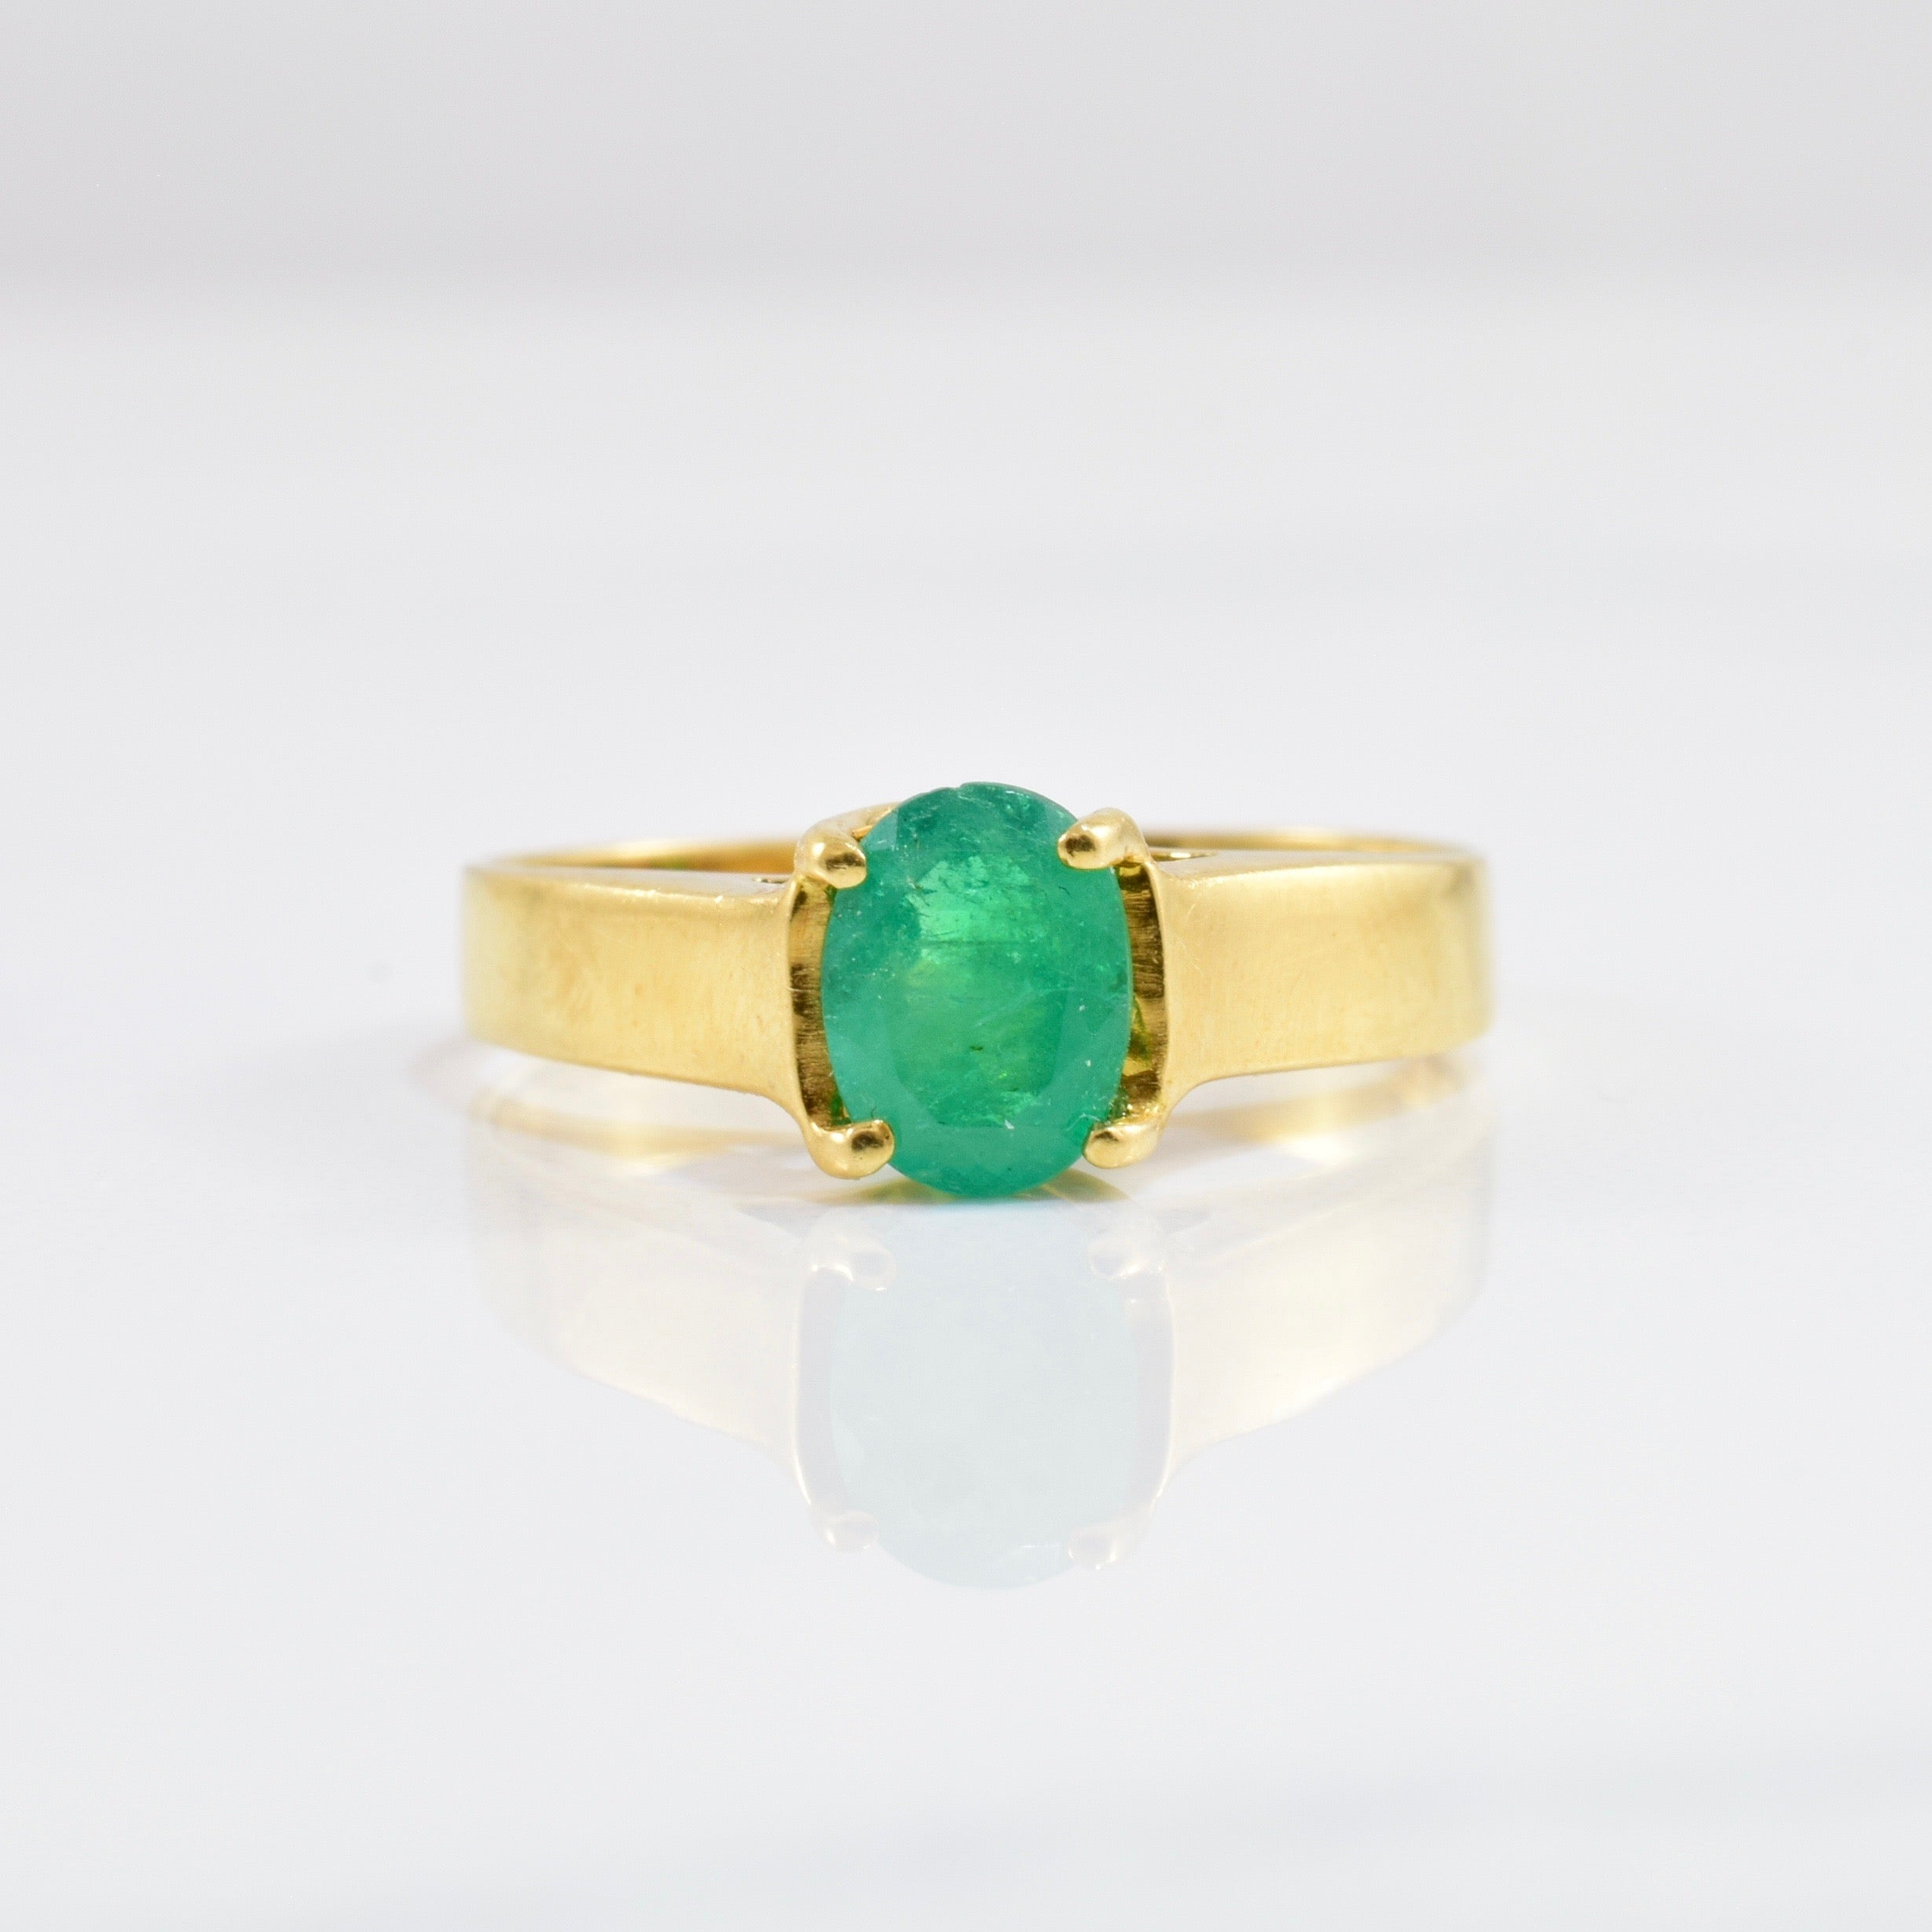 Emerald Solitaire Ring | SZ 5.75 |